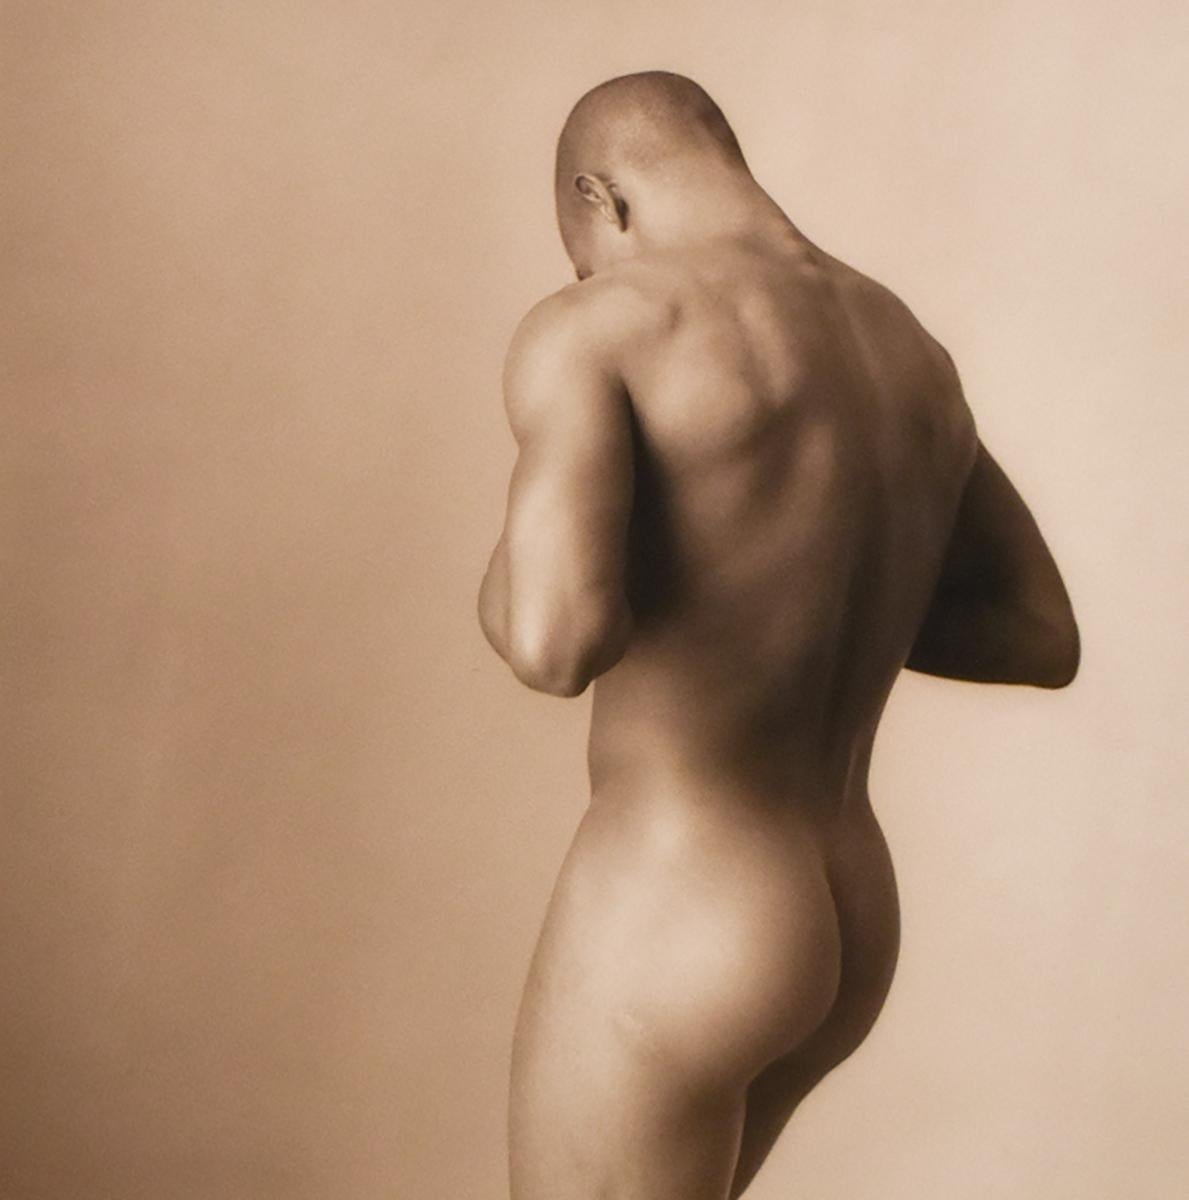 Male Nude with Head Down (Sepia Toned Figurative Photograph by David Halliday)